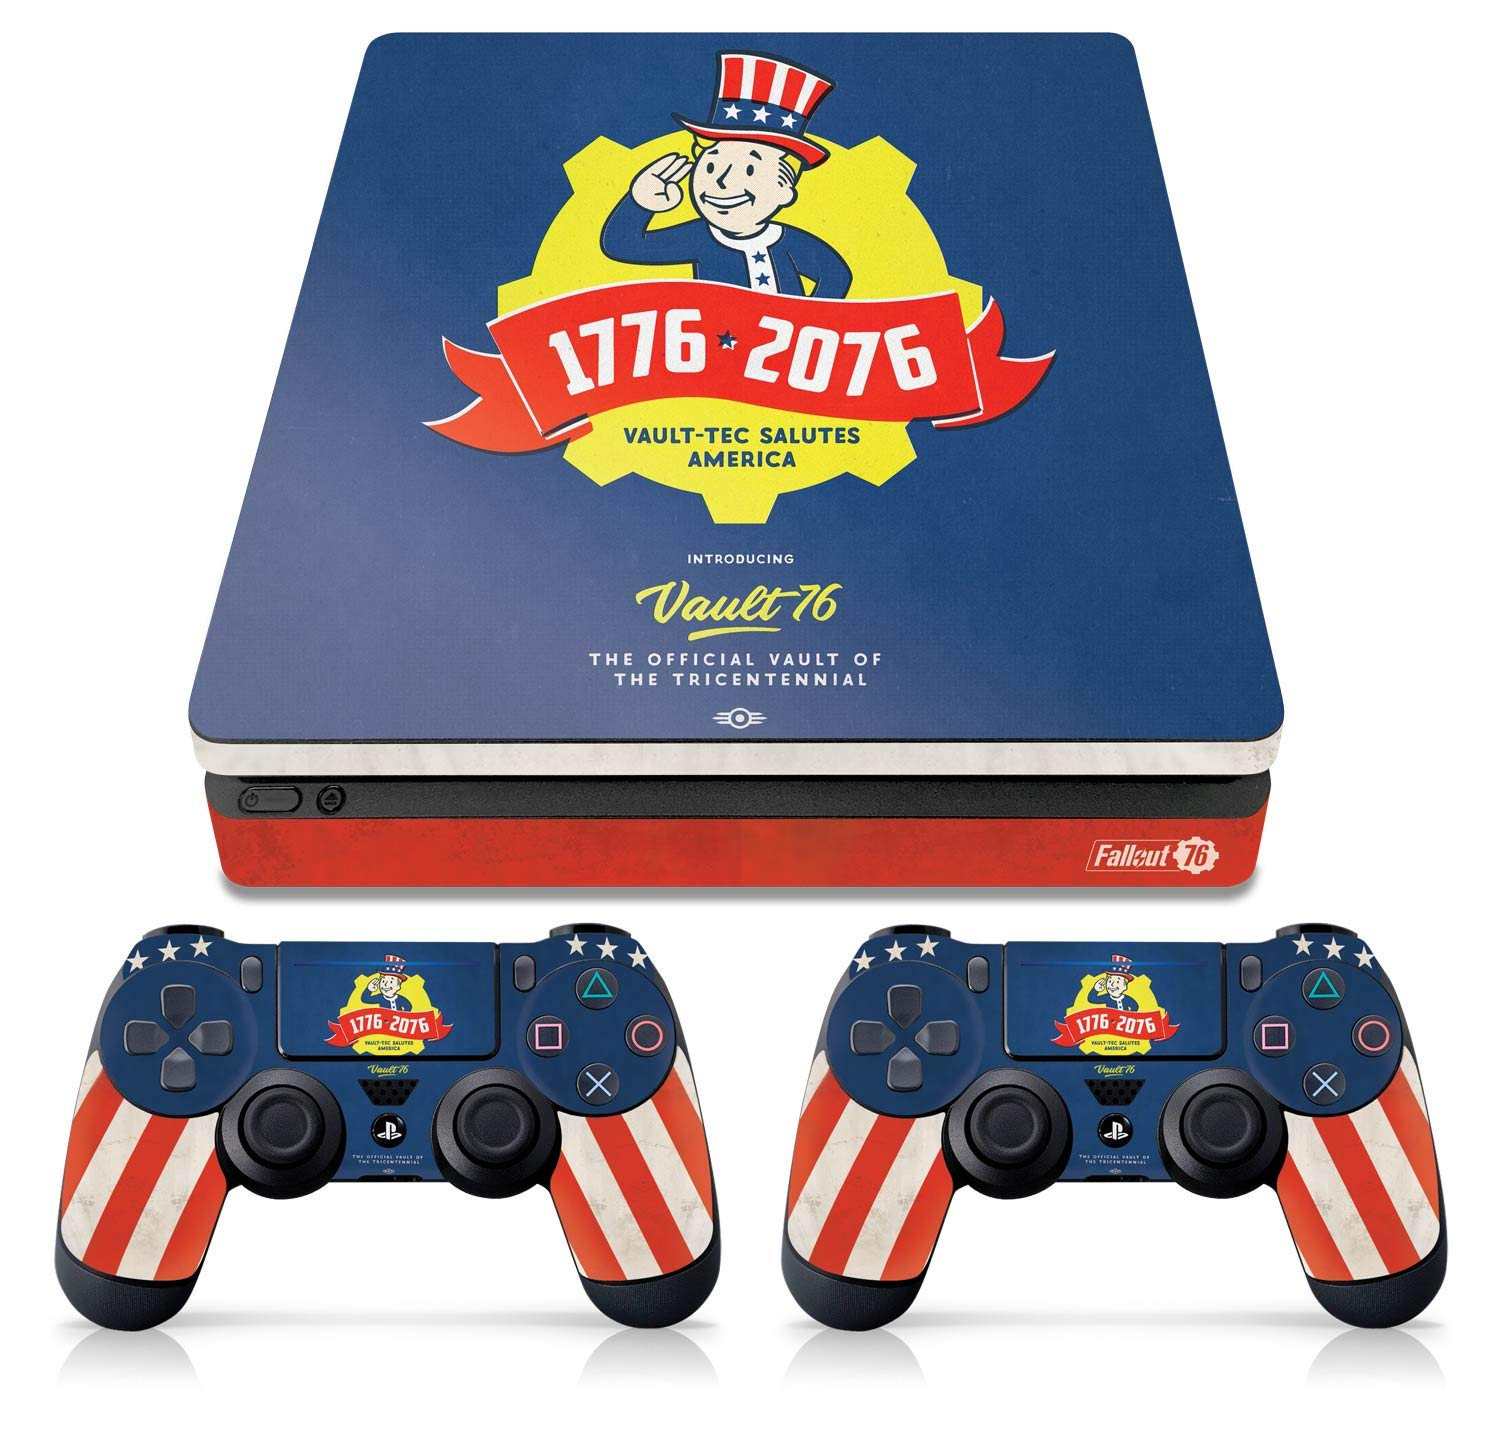 Controller Gear Officially Licensed Console Skin Bundle for PS4 Slim - Fallout - Tricentennial